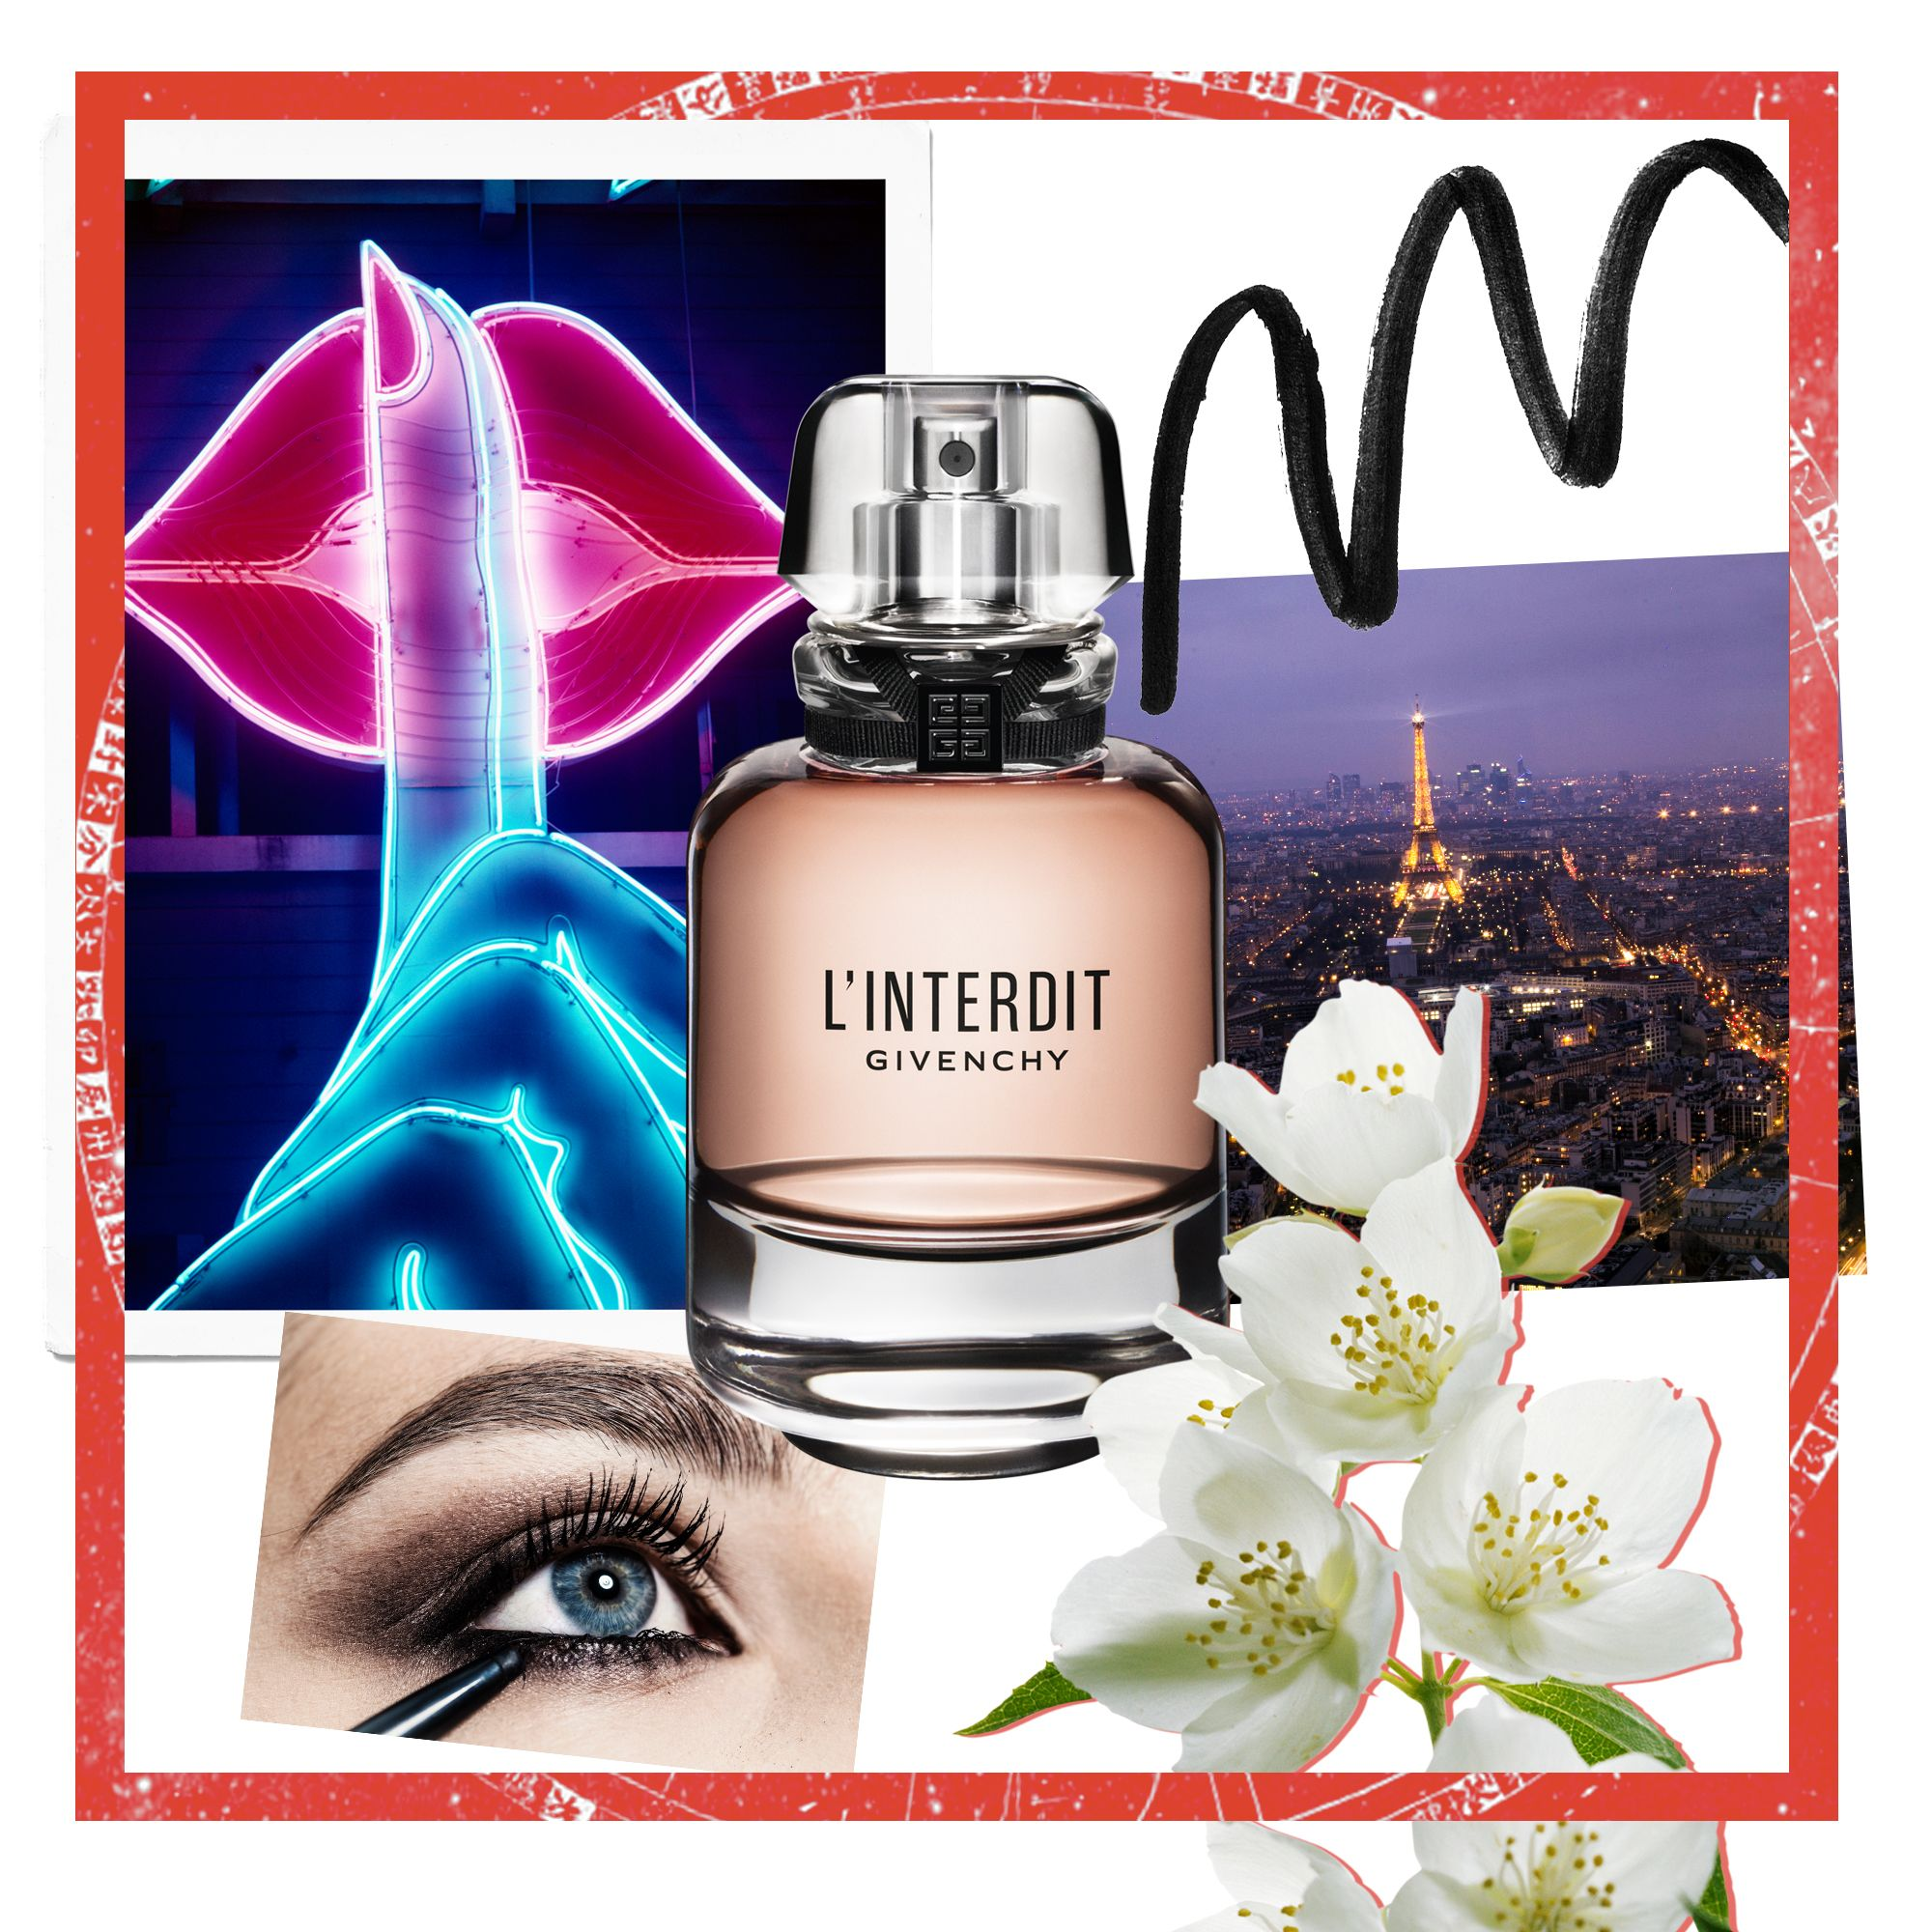 Find Your *Perfect* Fragrance Based on Your Sign